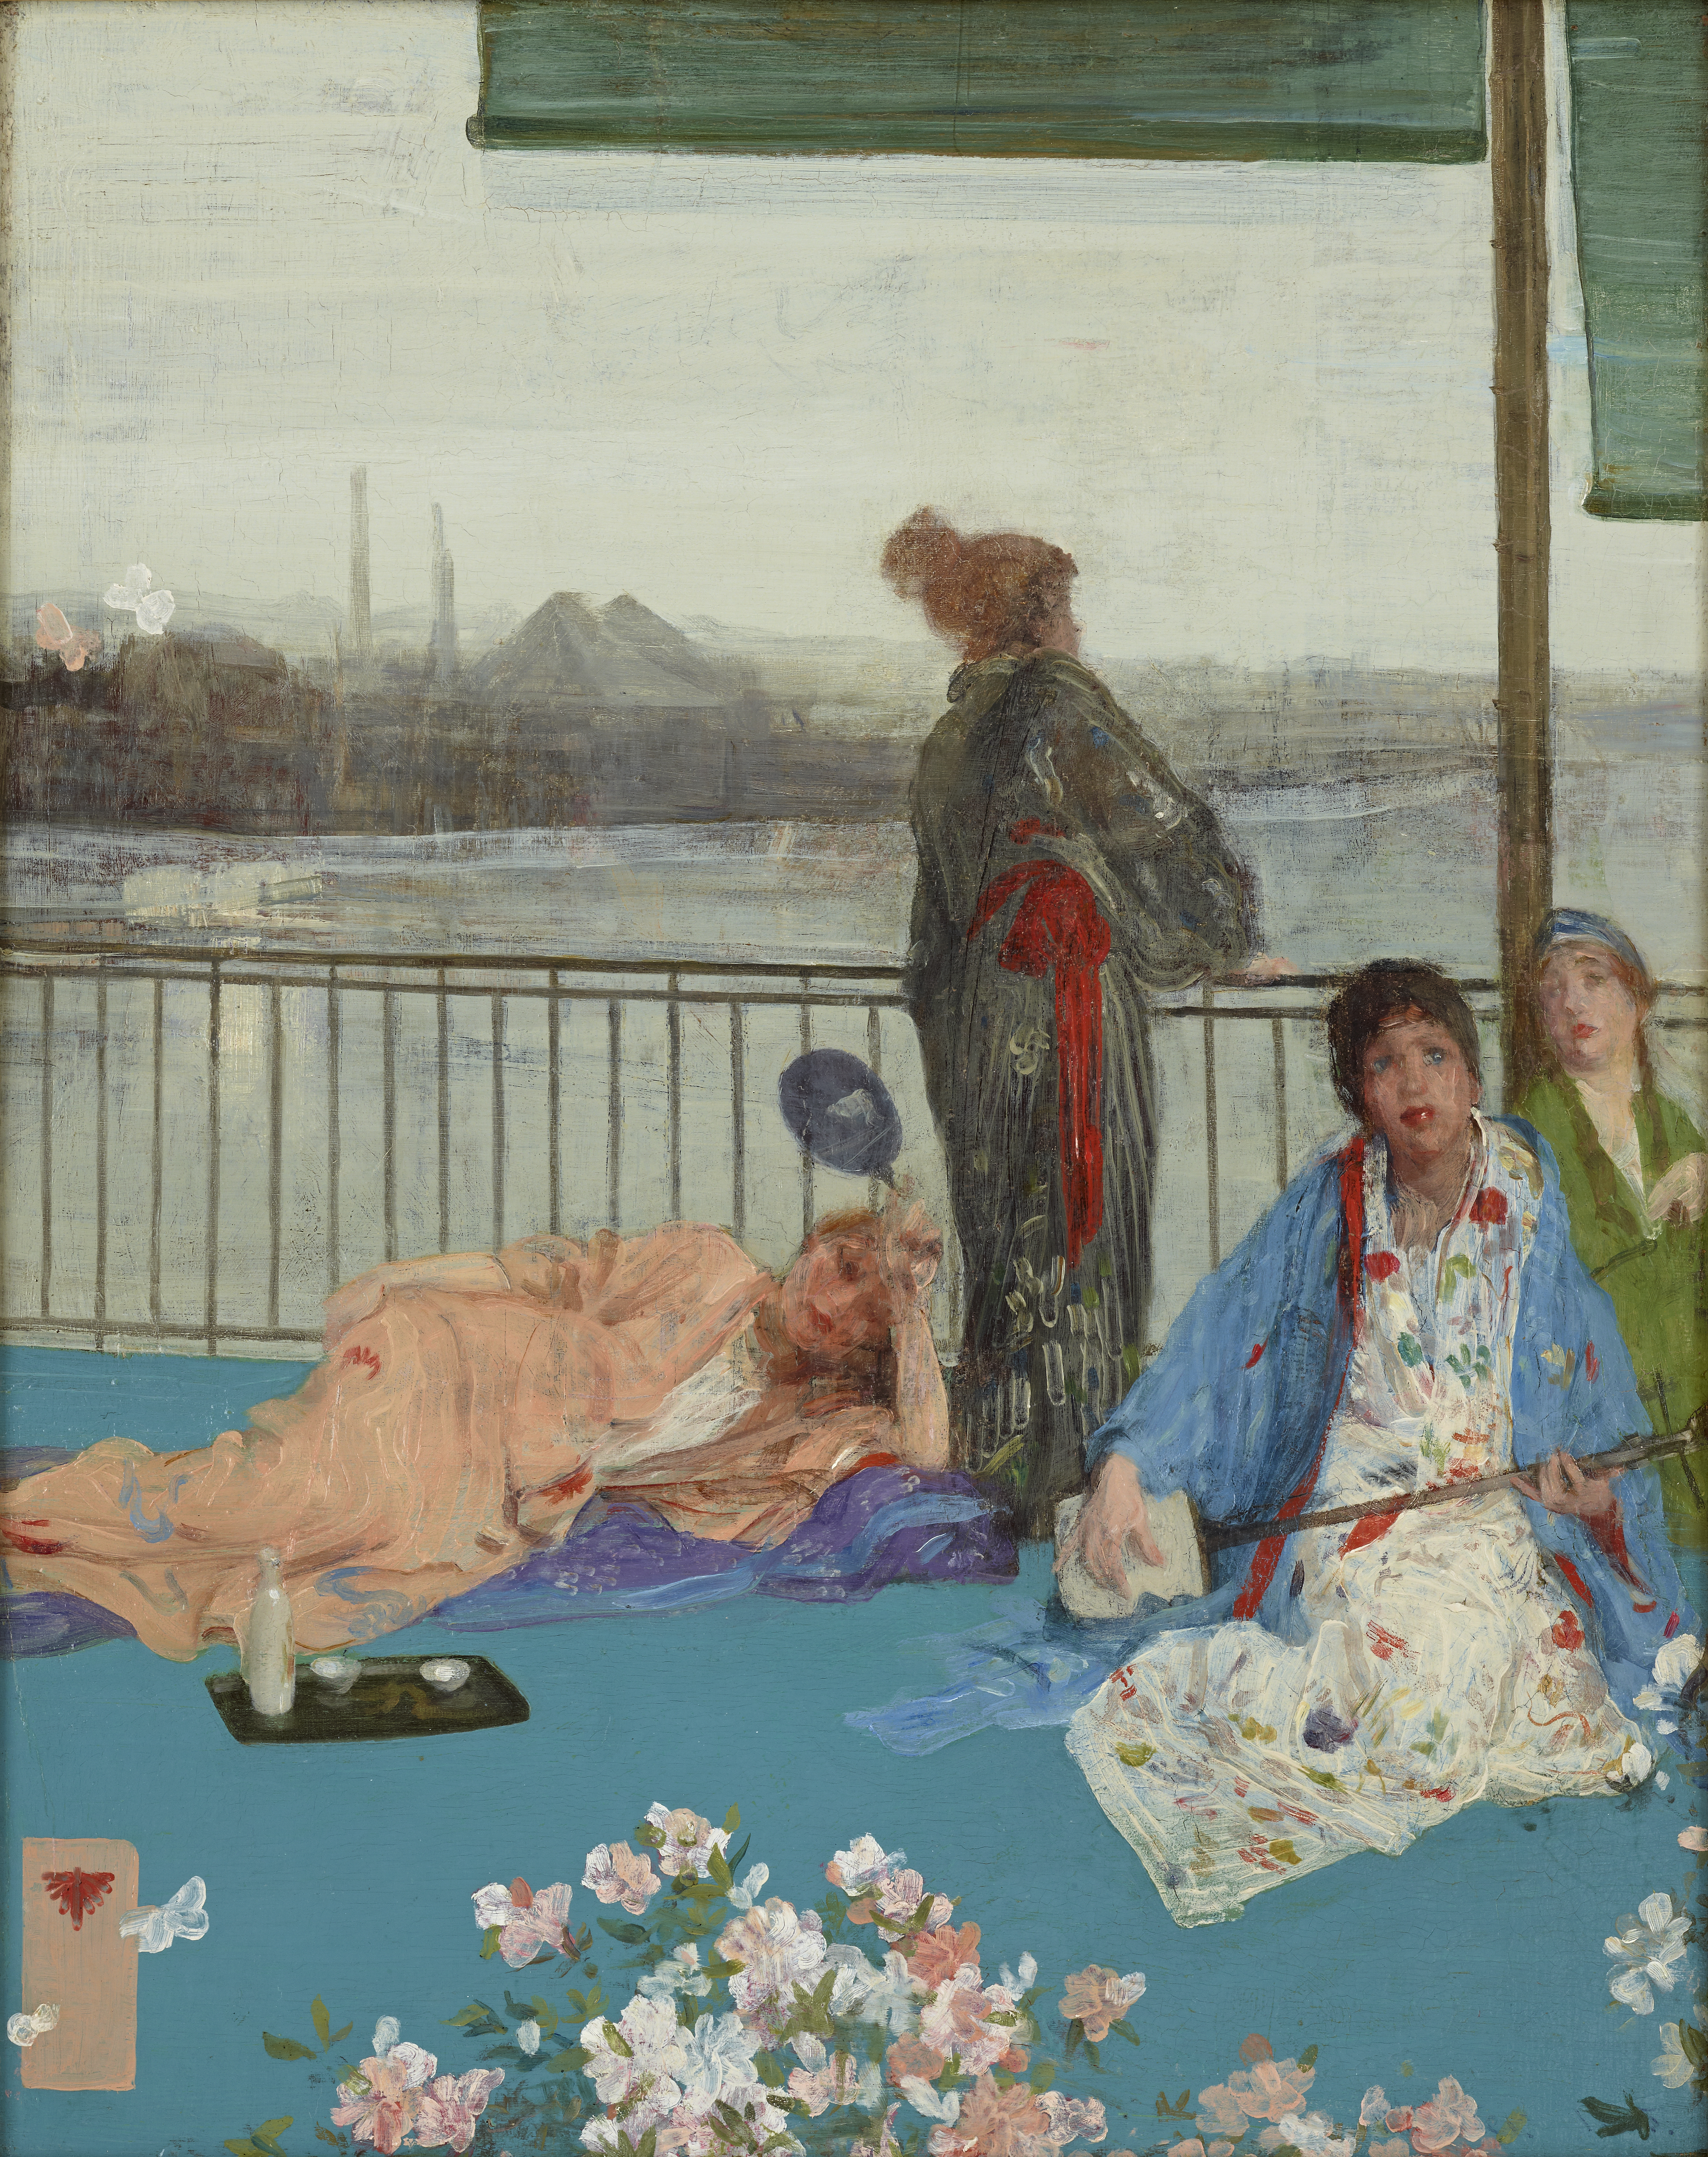 d719d4cdaf Figure 6. James McNeill Whistler, Variations in Flesh Colour and Green—The  Balcony